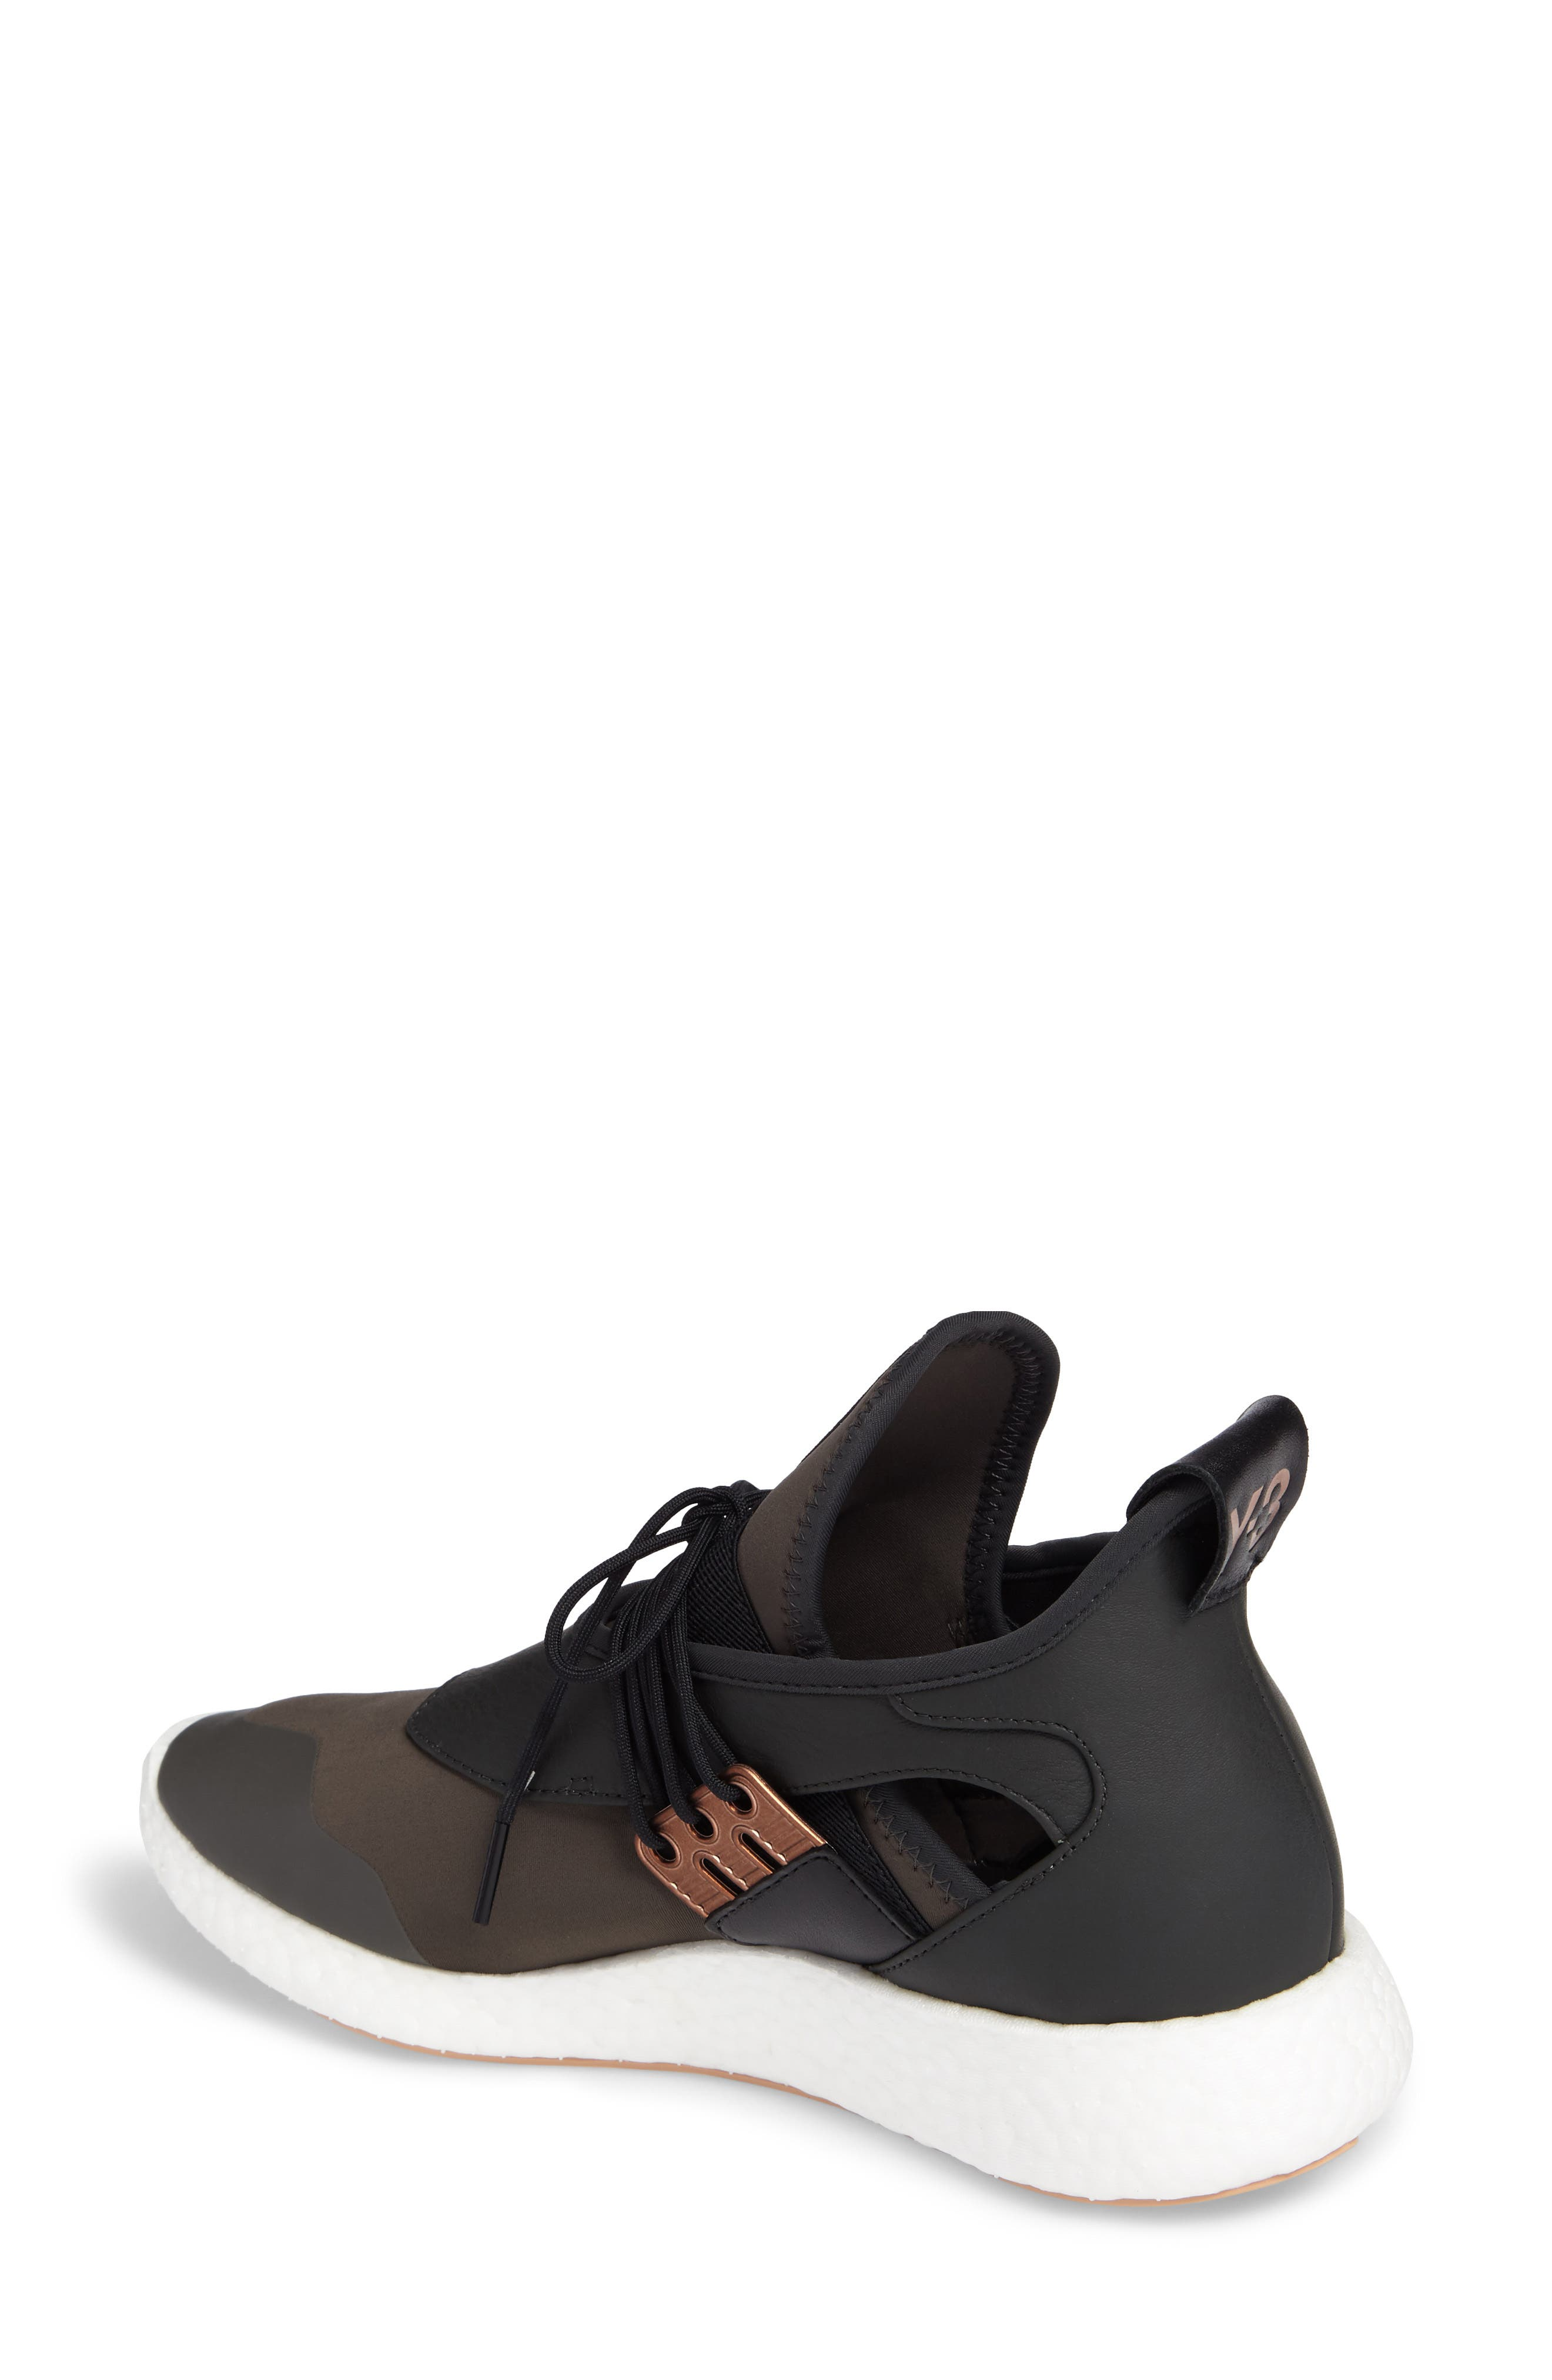 Elle Run Sneaker,                             Alternate thumbnail 6, color,